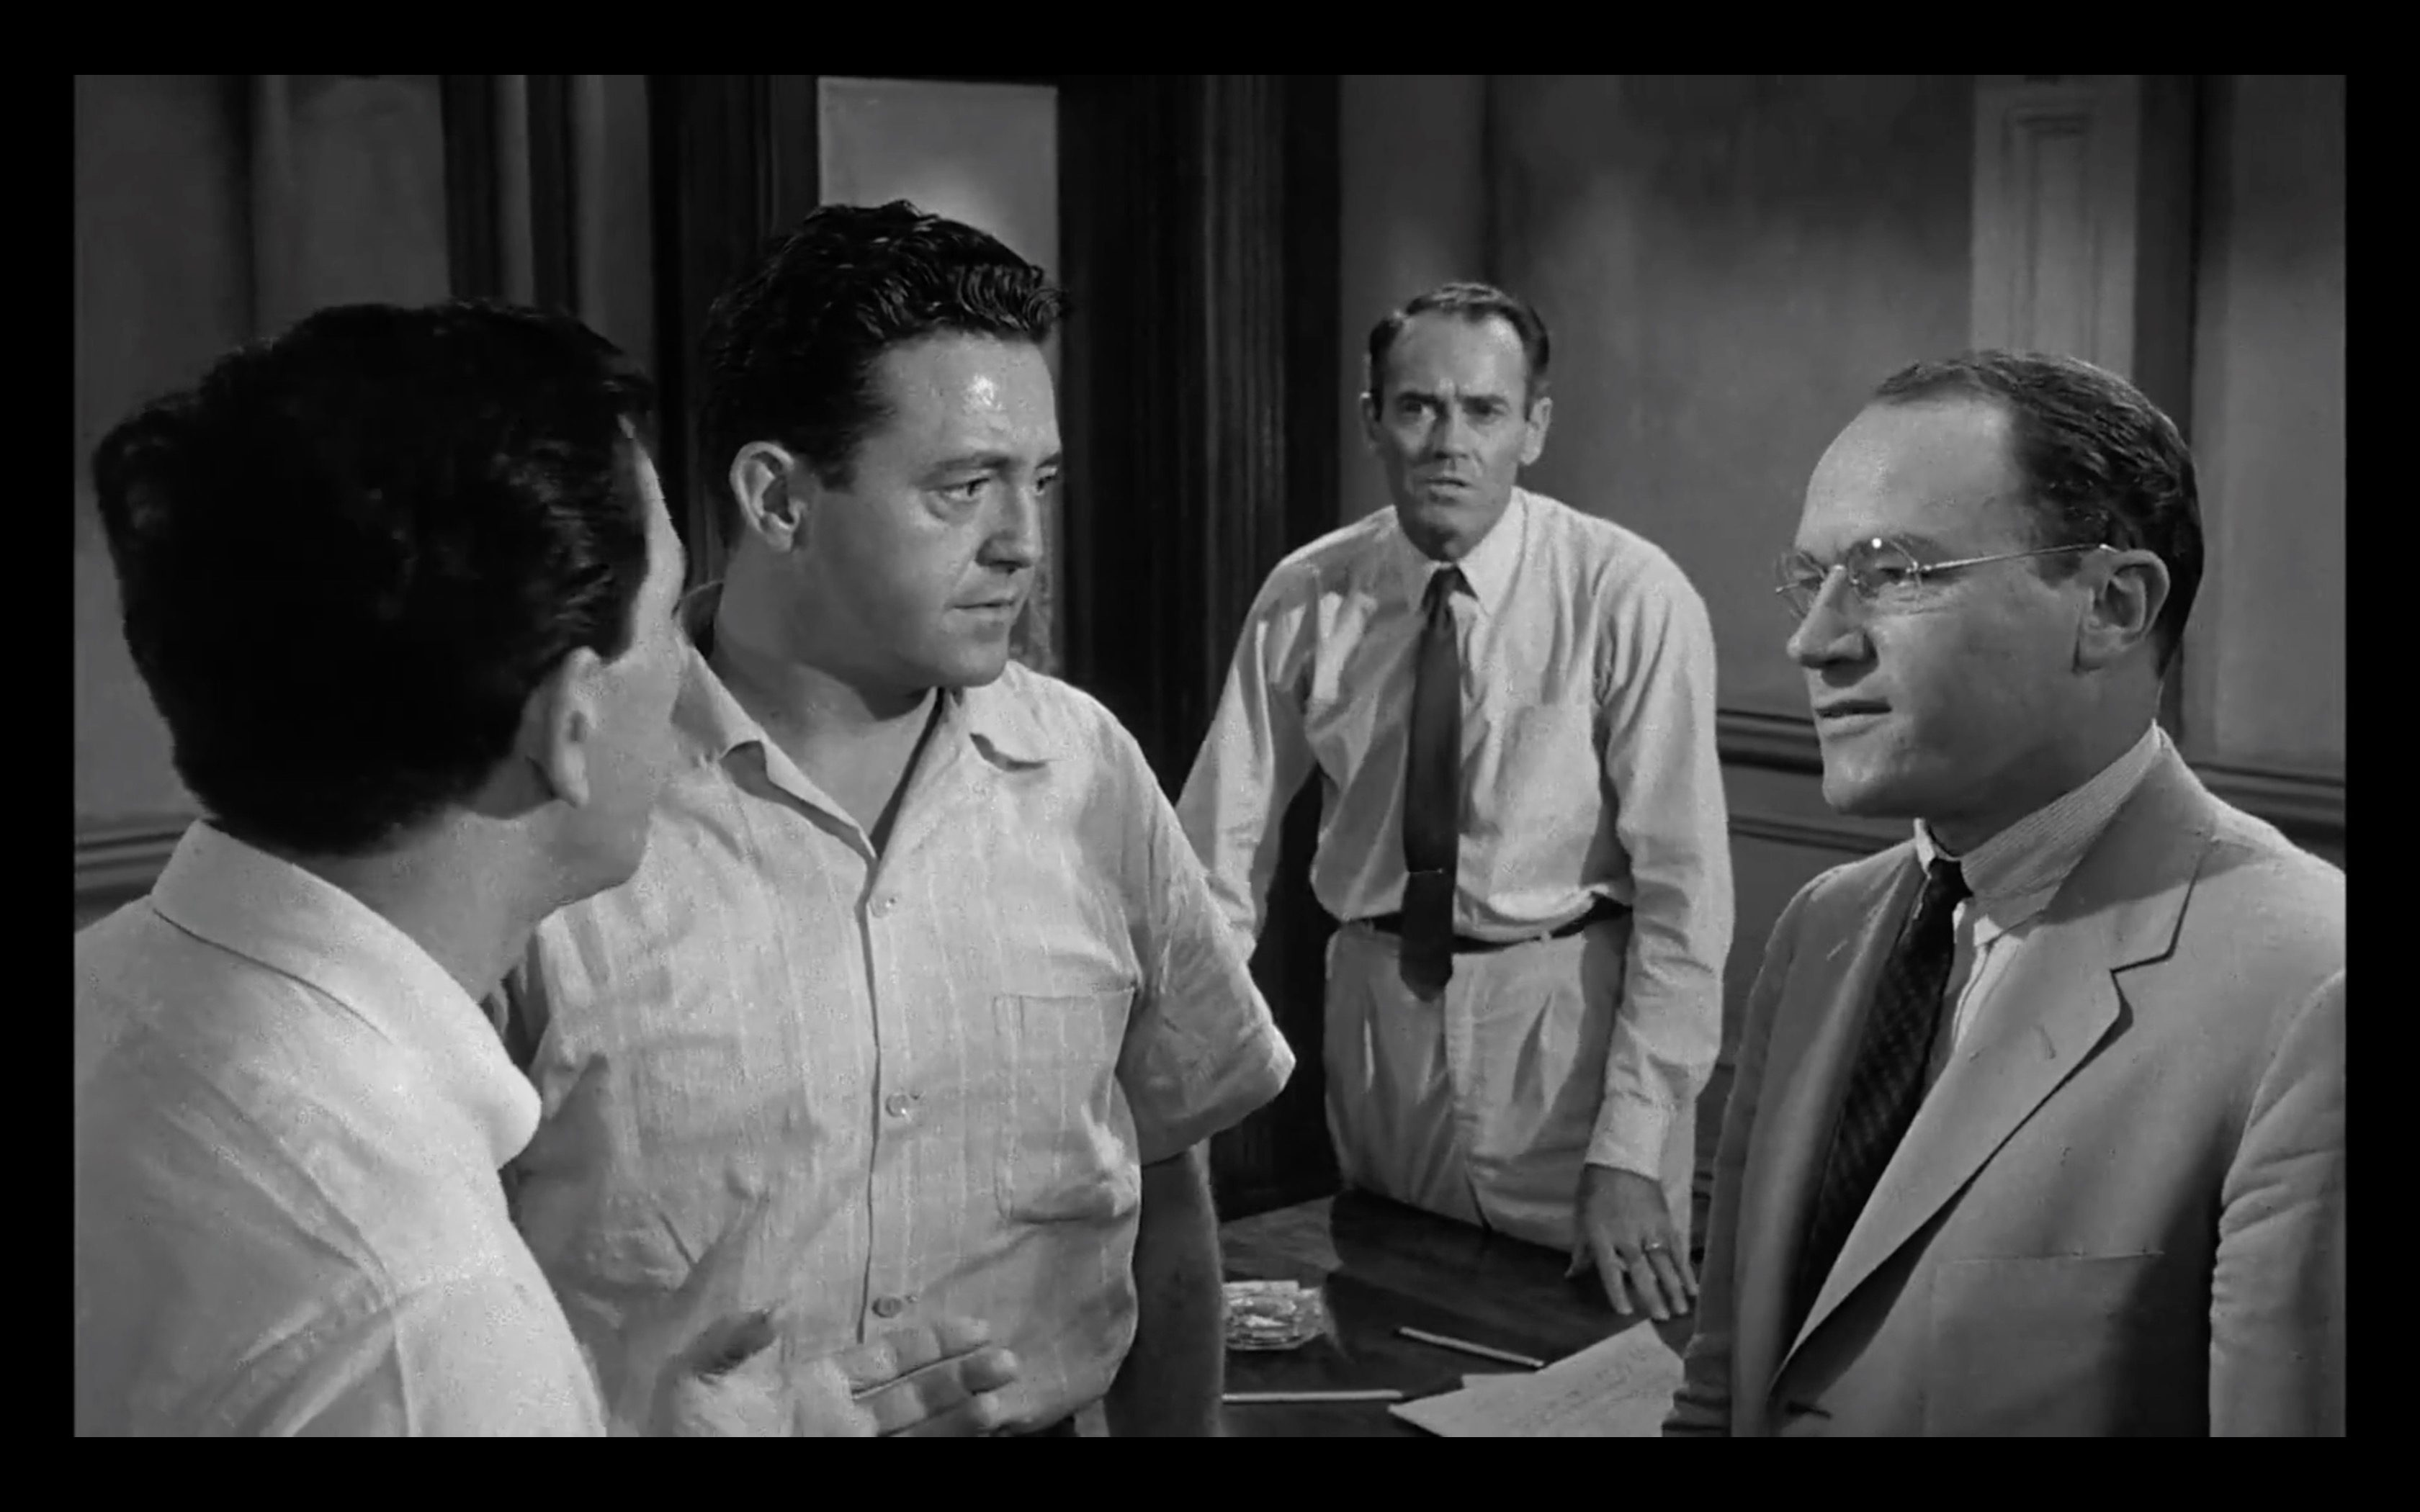 racism in the movie 12 angry men A pet project of henry fonda's, twelve angry men was his only foray into film production the actor's partner in this venture was reginald rose, who wrote the 1954 television play on which the.